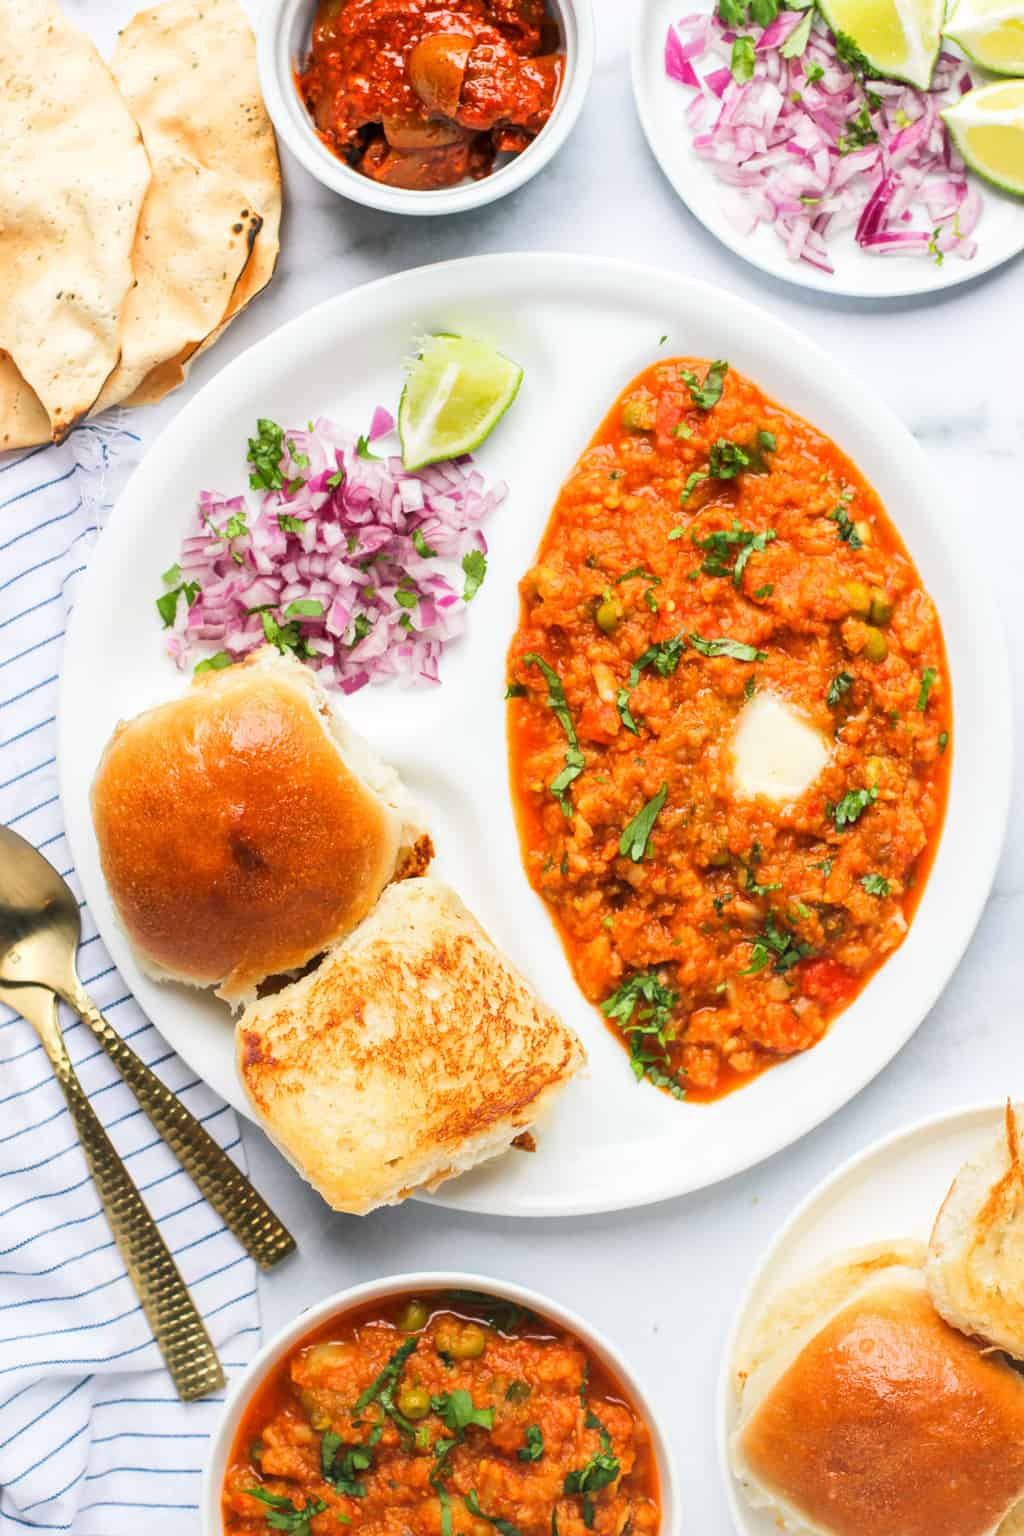 pav bhaji served with diced onions, pickle and papad